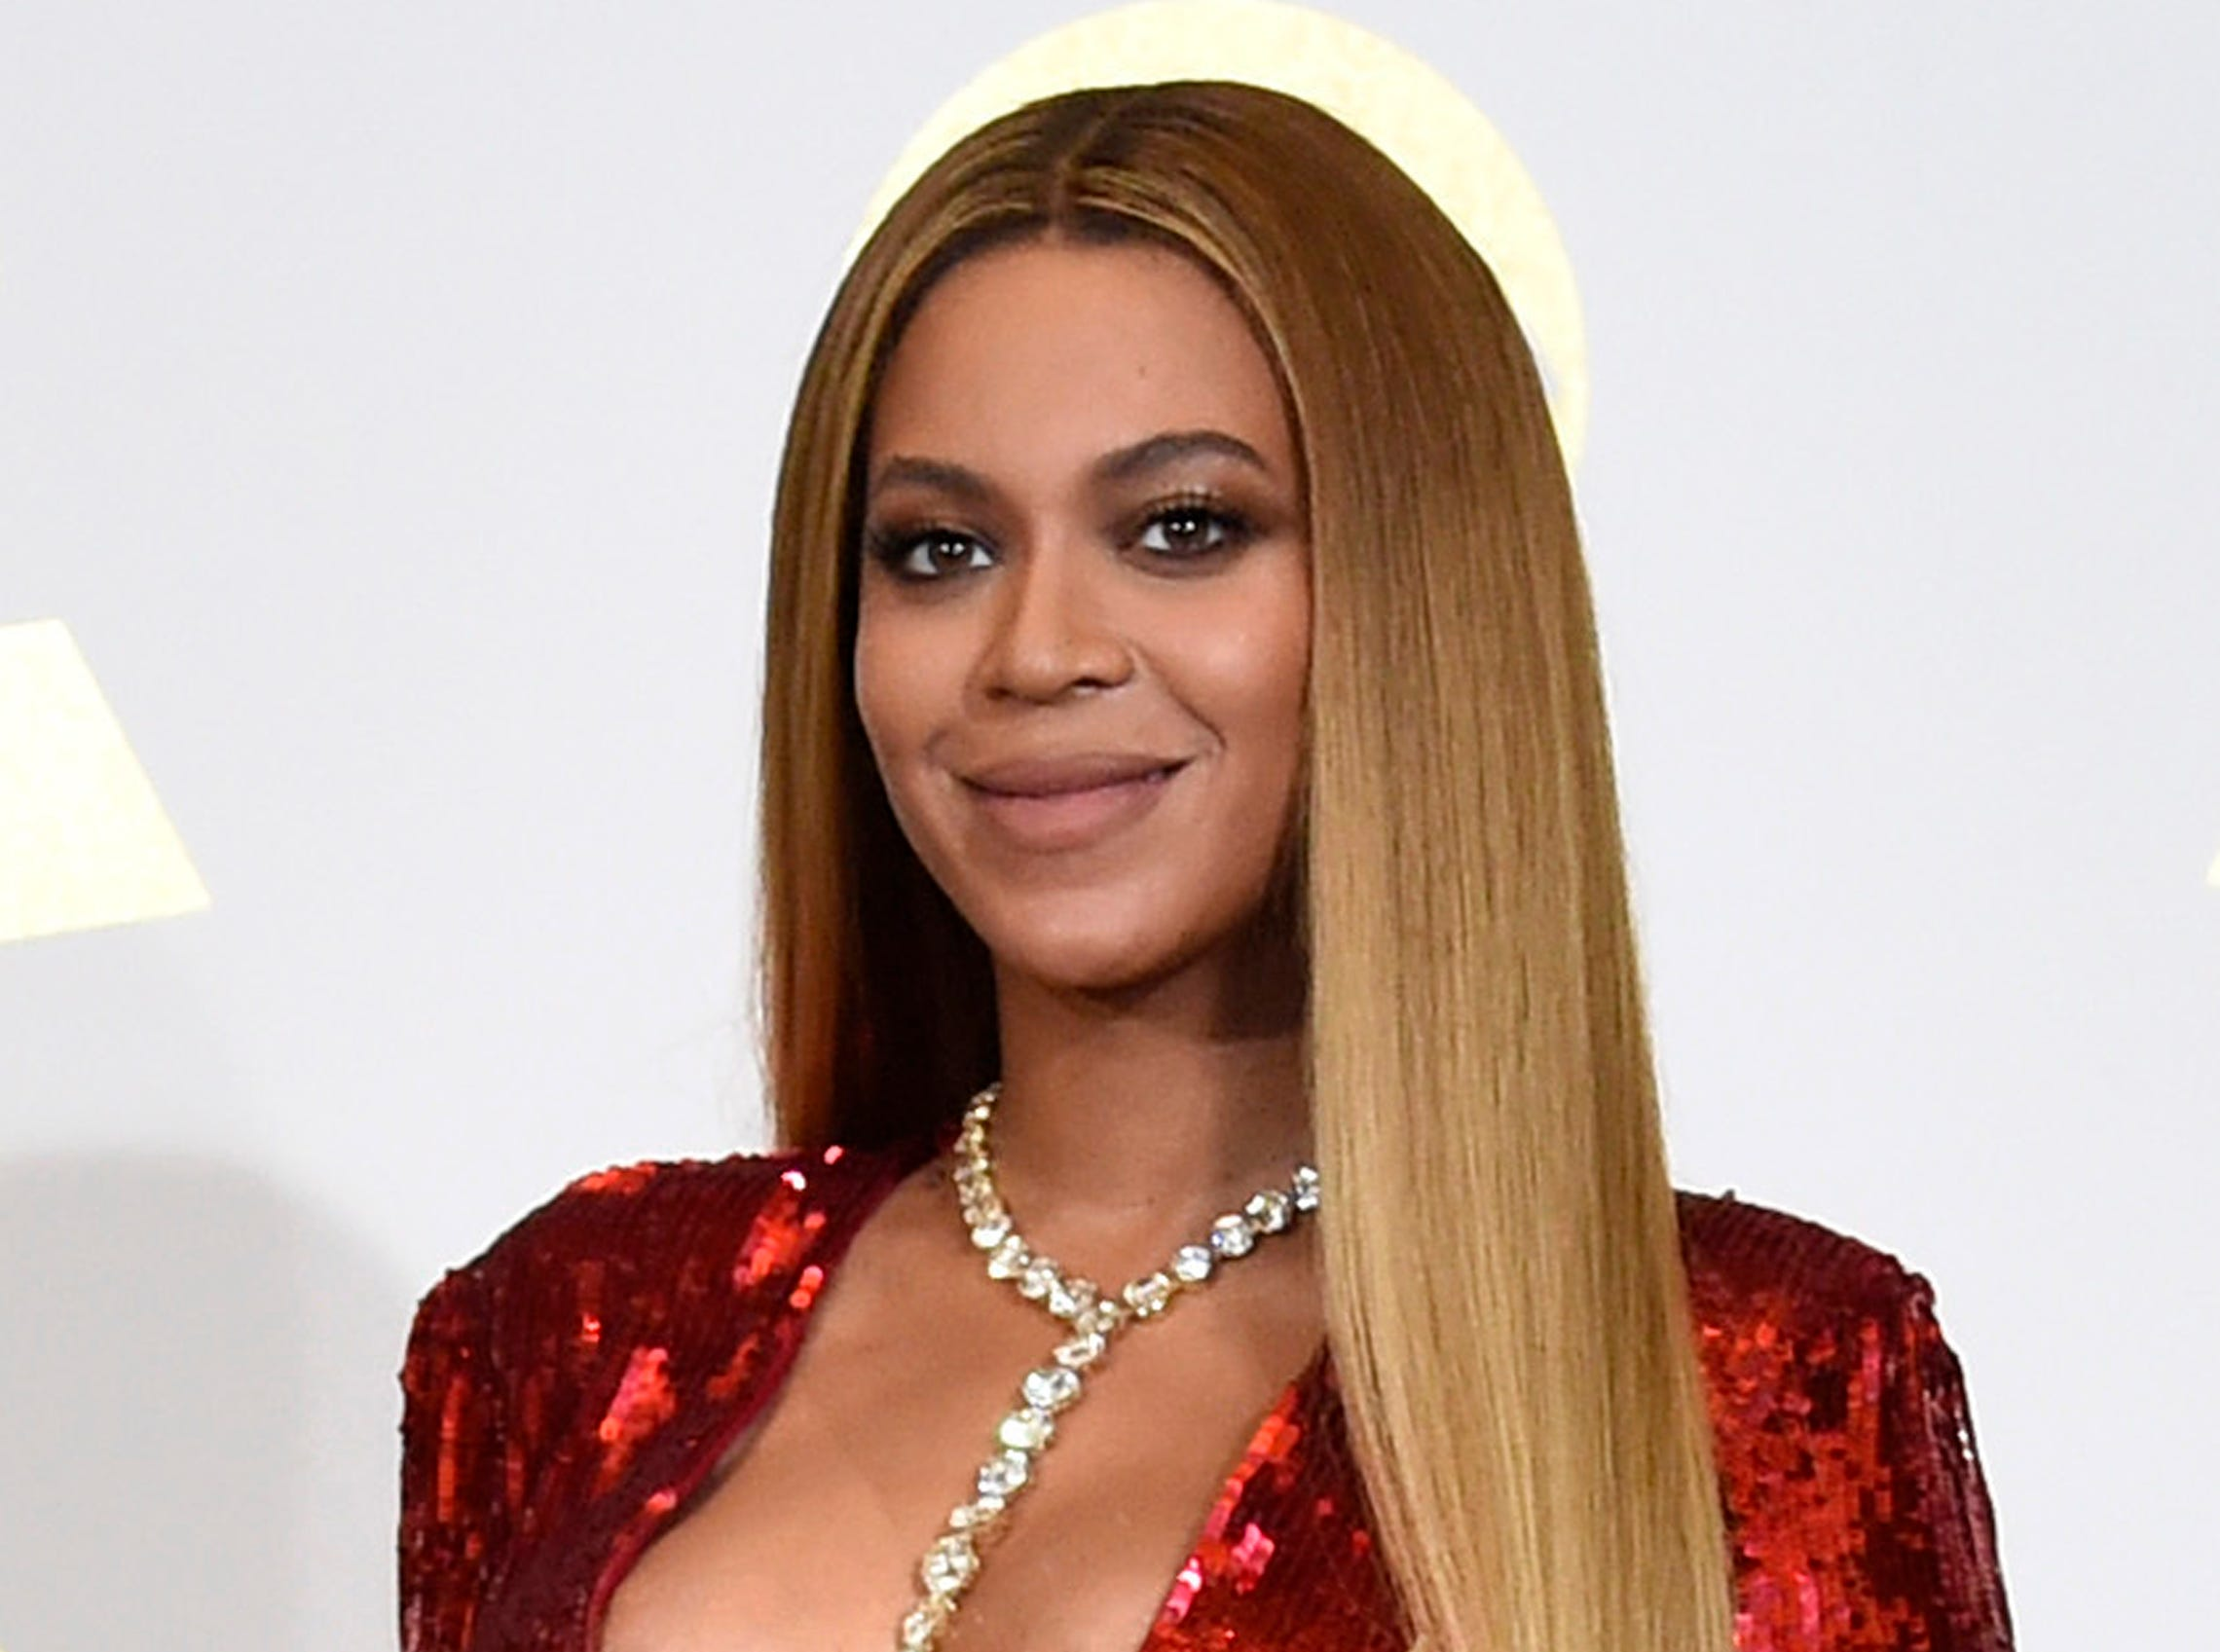 "FILE - In this Feb. 12, 2017 file photo, Beyonce poses in the press room at the 59th annual Grammy Awards in Los Angeles. The singer reveals she had an emergency Caesarean section when she delivered her twins. In a series of essays in September's Vogue magazine, she says she was 218 pounds and was swollen from toxemia. The 36-year-old says they spent many weeks in intensive care and her husband, Jay Z, was ""such a strong support system."" (Photo by Chris Pizzello/Invision/AP, File) ORG XMIT: NYET103"